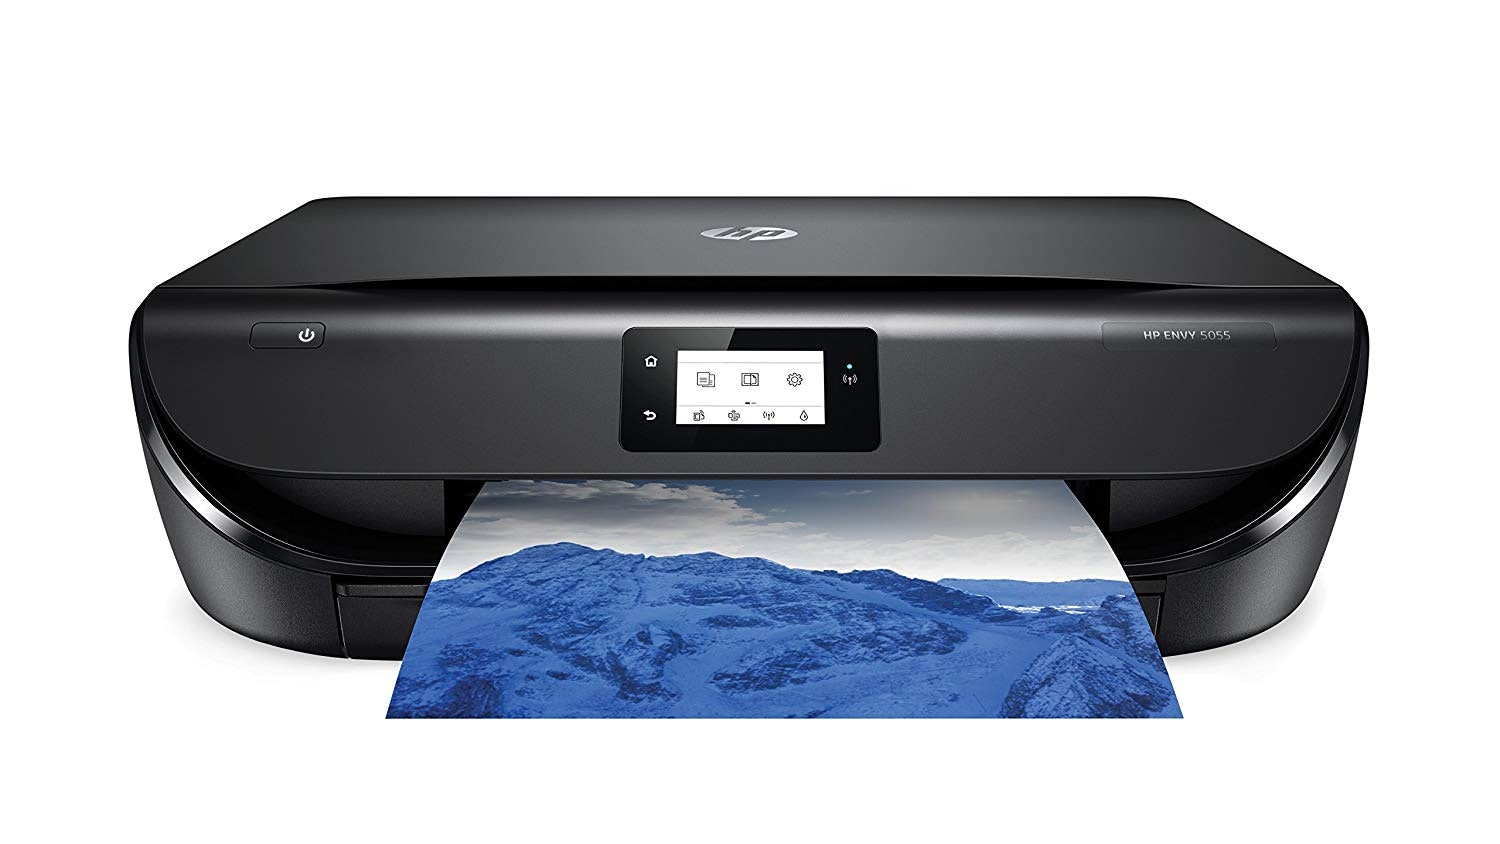 HP ENVY 5055 Wireless All-in-One Photo Printer, HP Instant Ink & Amazon Dash Replenishment ready (M2U85A